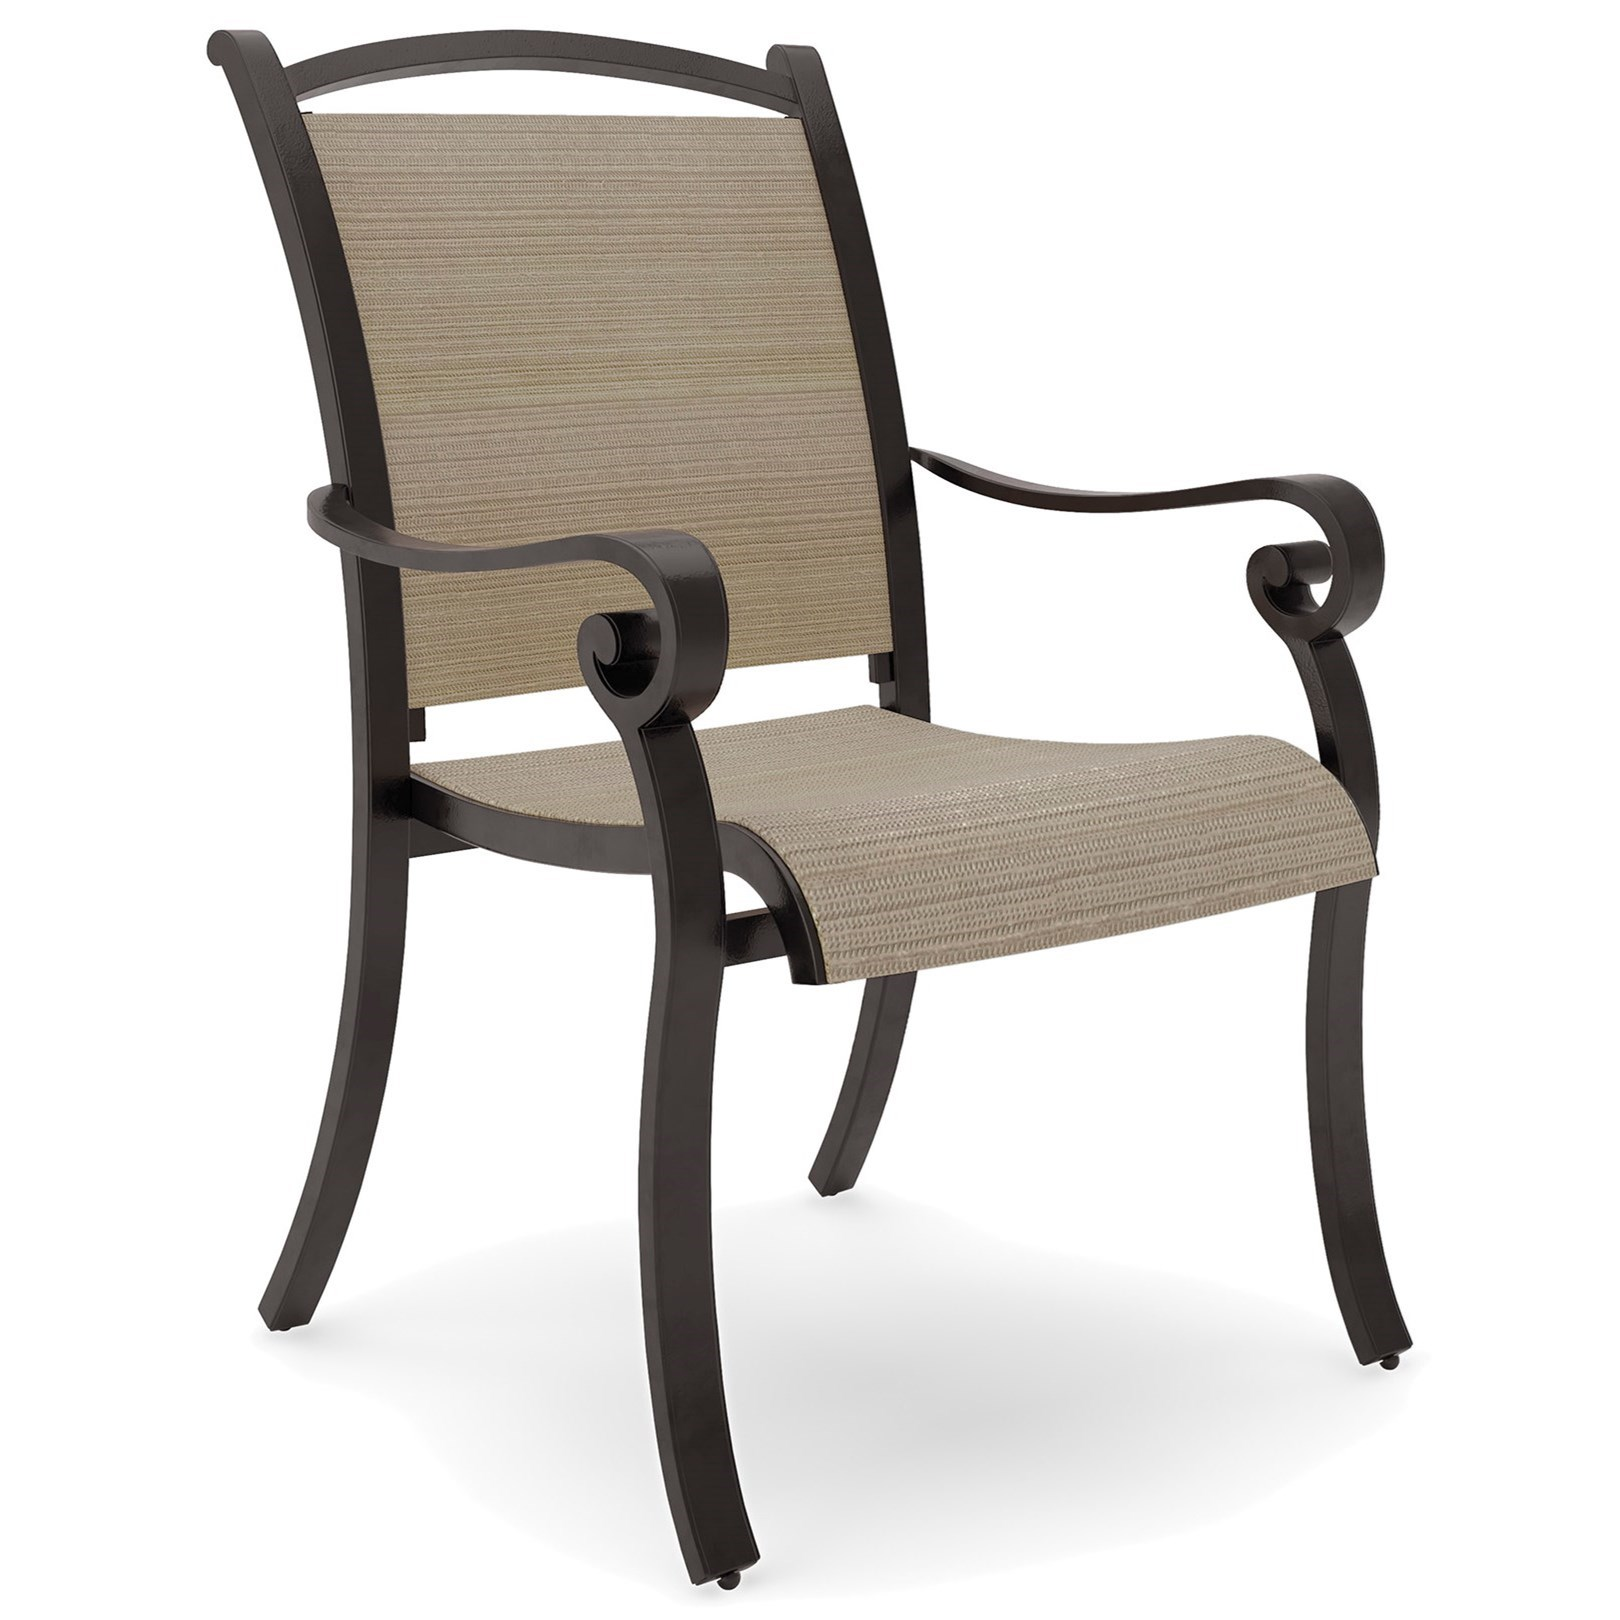 Set of 4 Sling Chairs